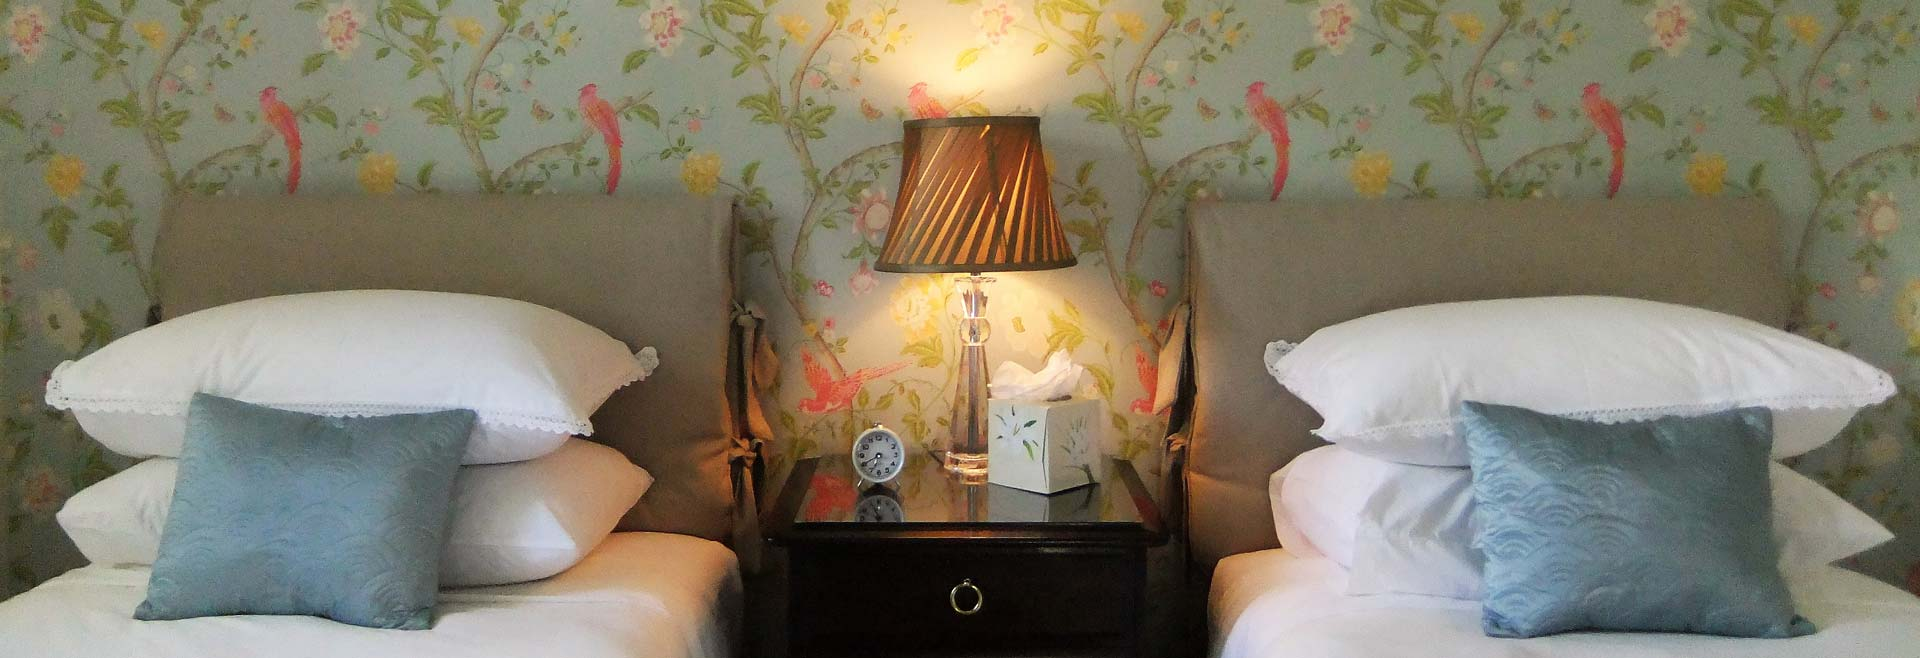 One of the beautiful bedrooms at our guest house in Cirencester